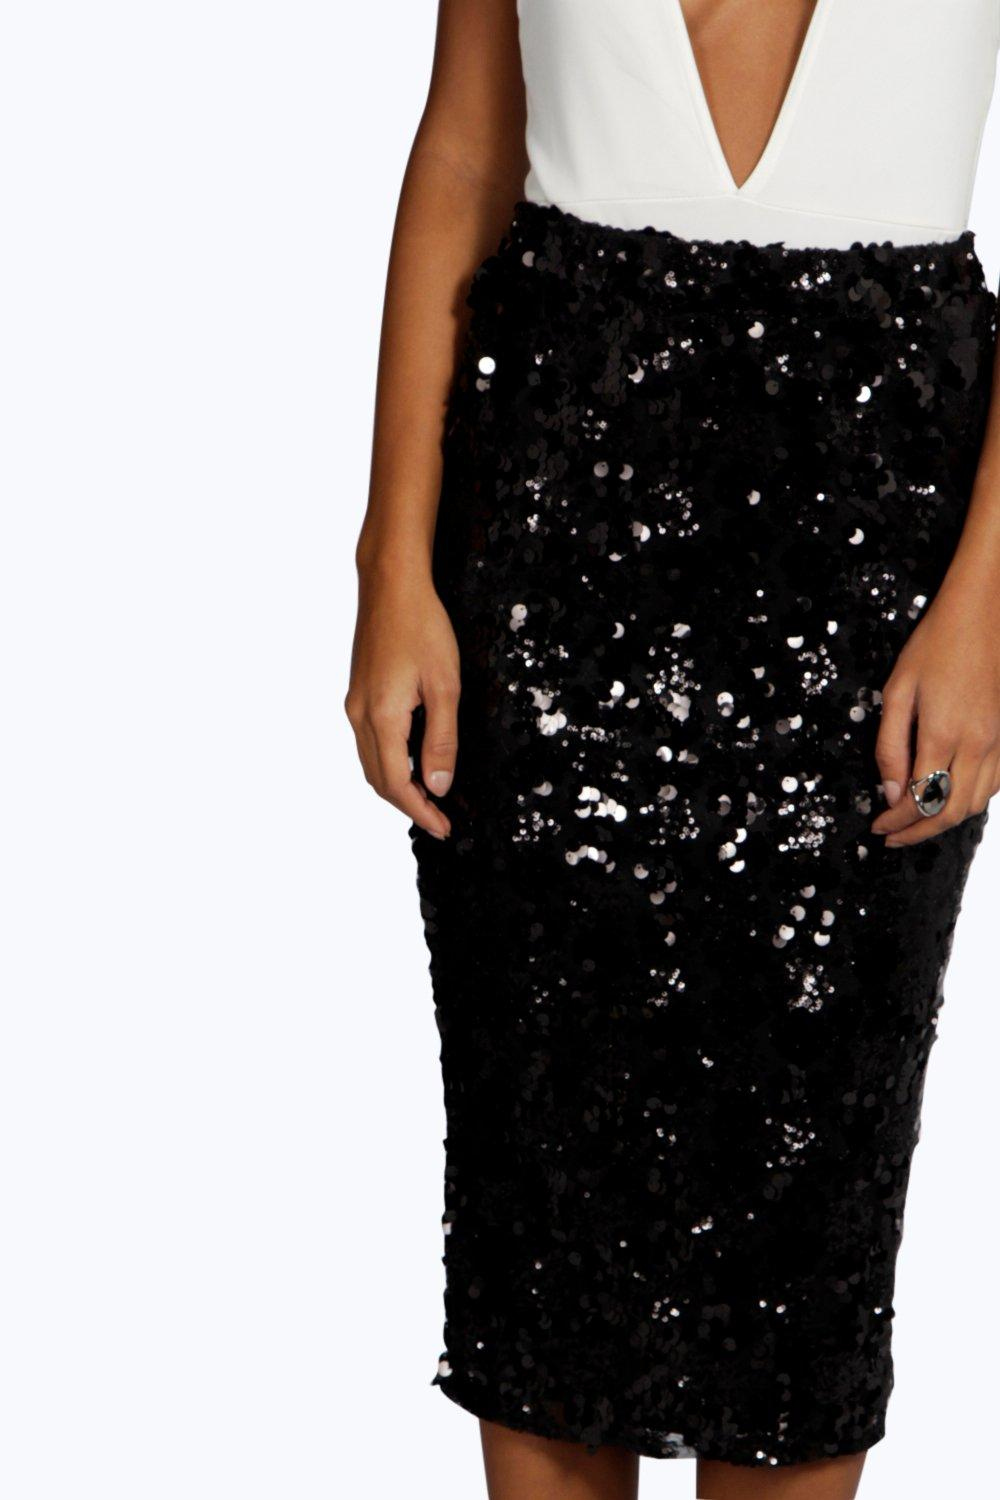 About Sequin Skirts. You are set for a night out with your friends and realize that a little more sparkle never hurt anybody. Whether you find yourself dancing in a club or having a drink on the rooftop, a sequin skirt is a solid choice that will ensure all eyes land on you.